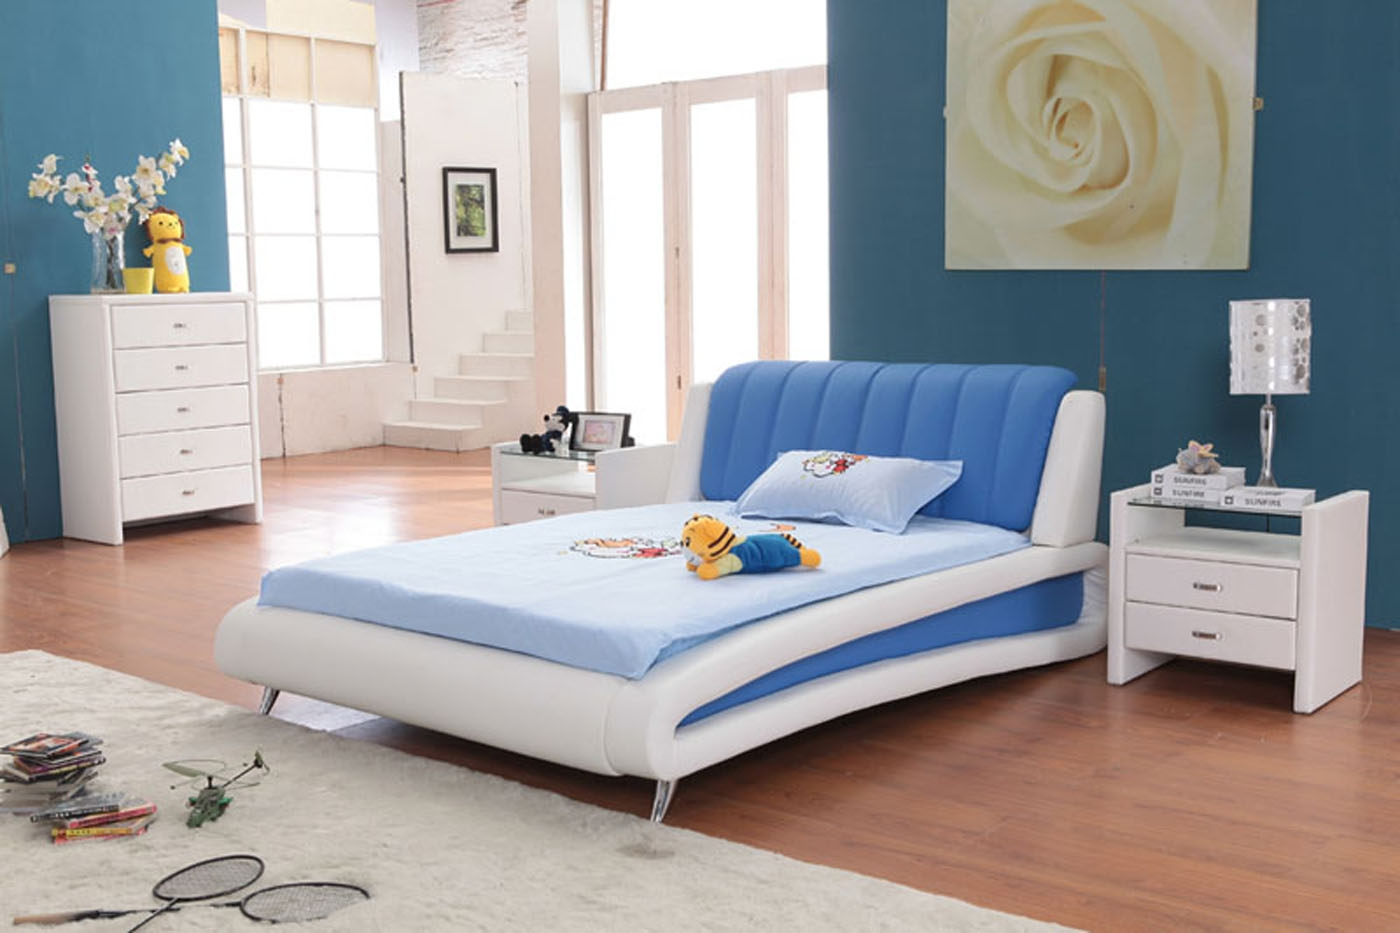 blue and white bedroom furniture photo - 3